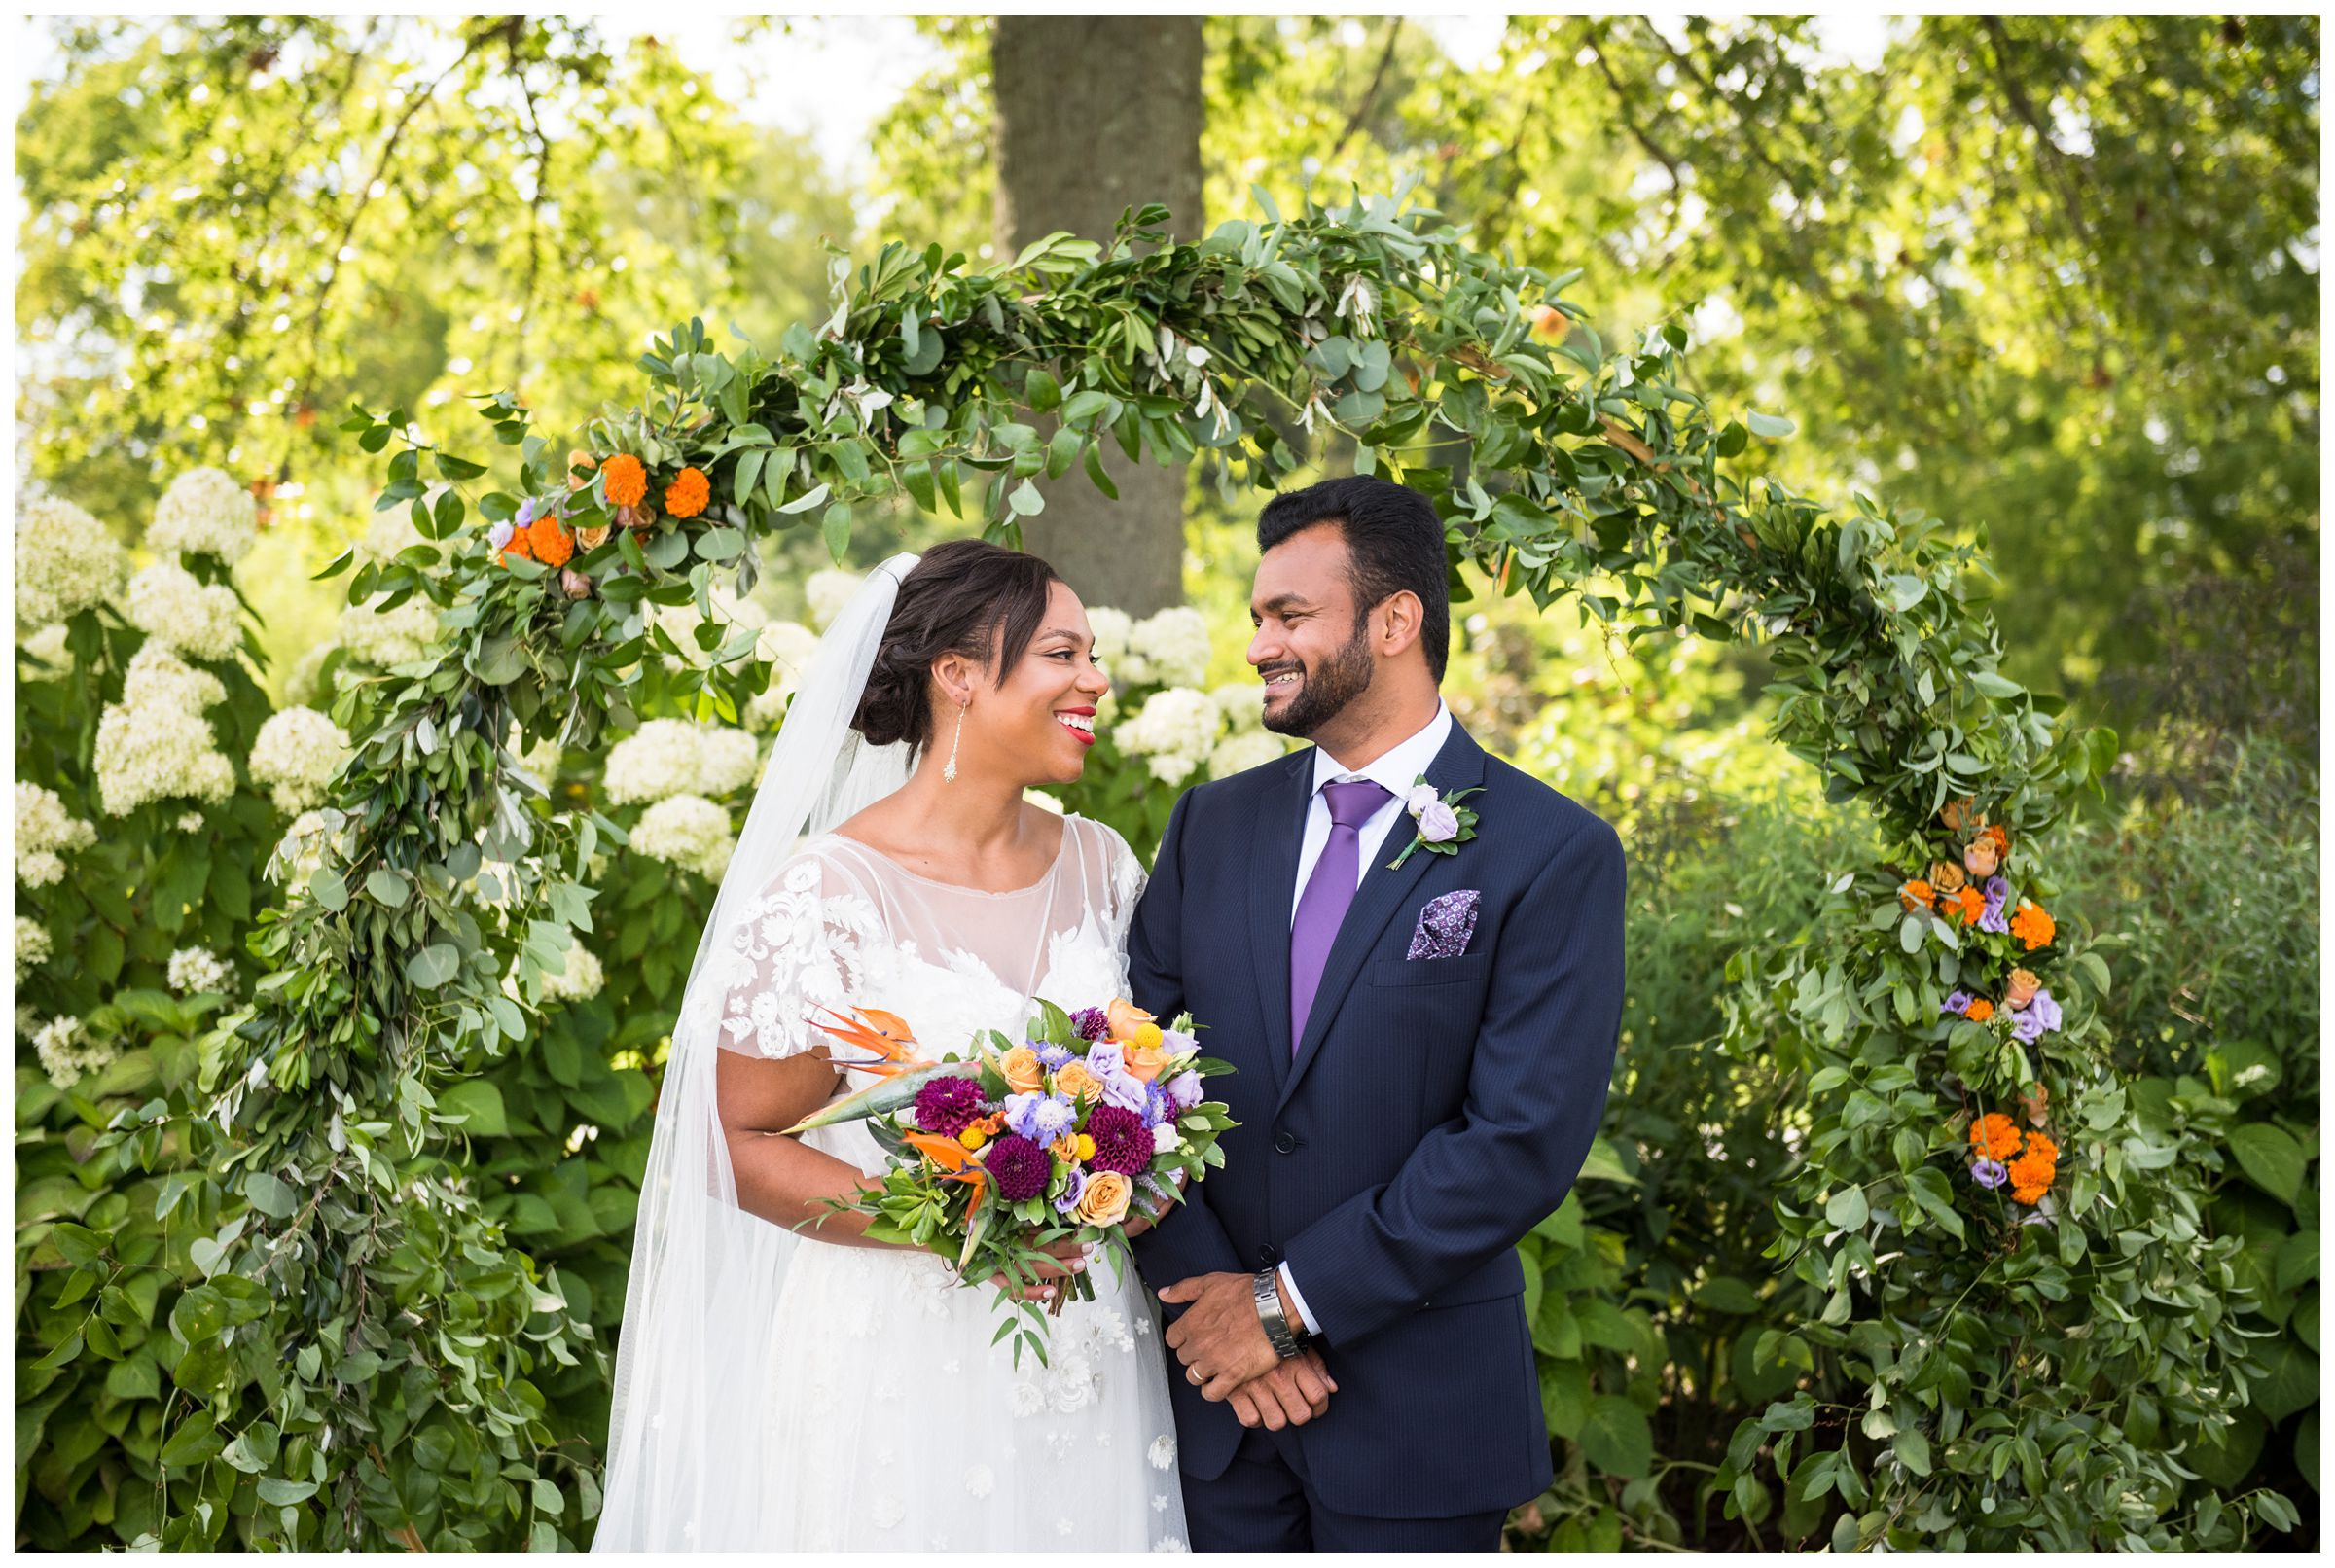 Columbus wedding photography of black bride and Indian groom under floral moongate arch with colorful purple and orange flowers